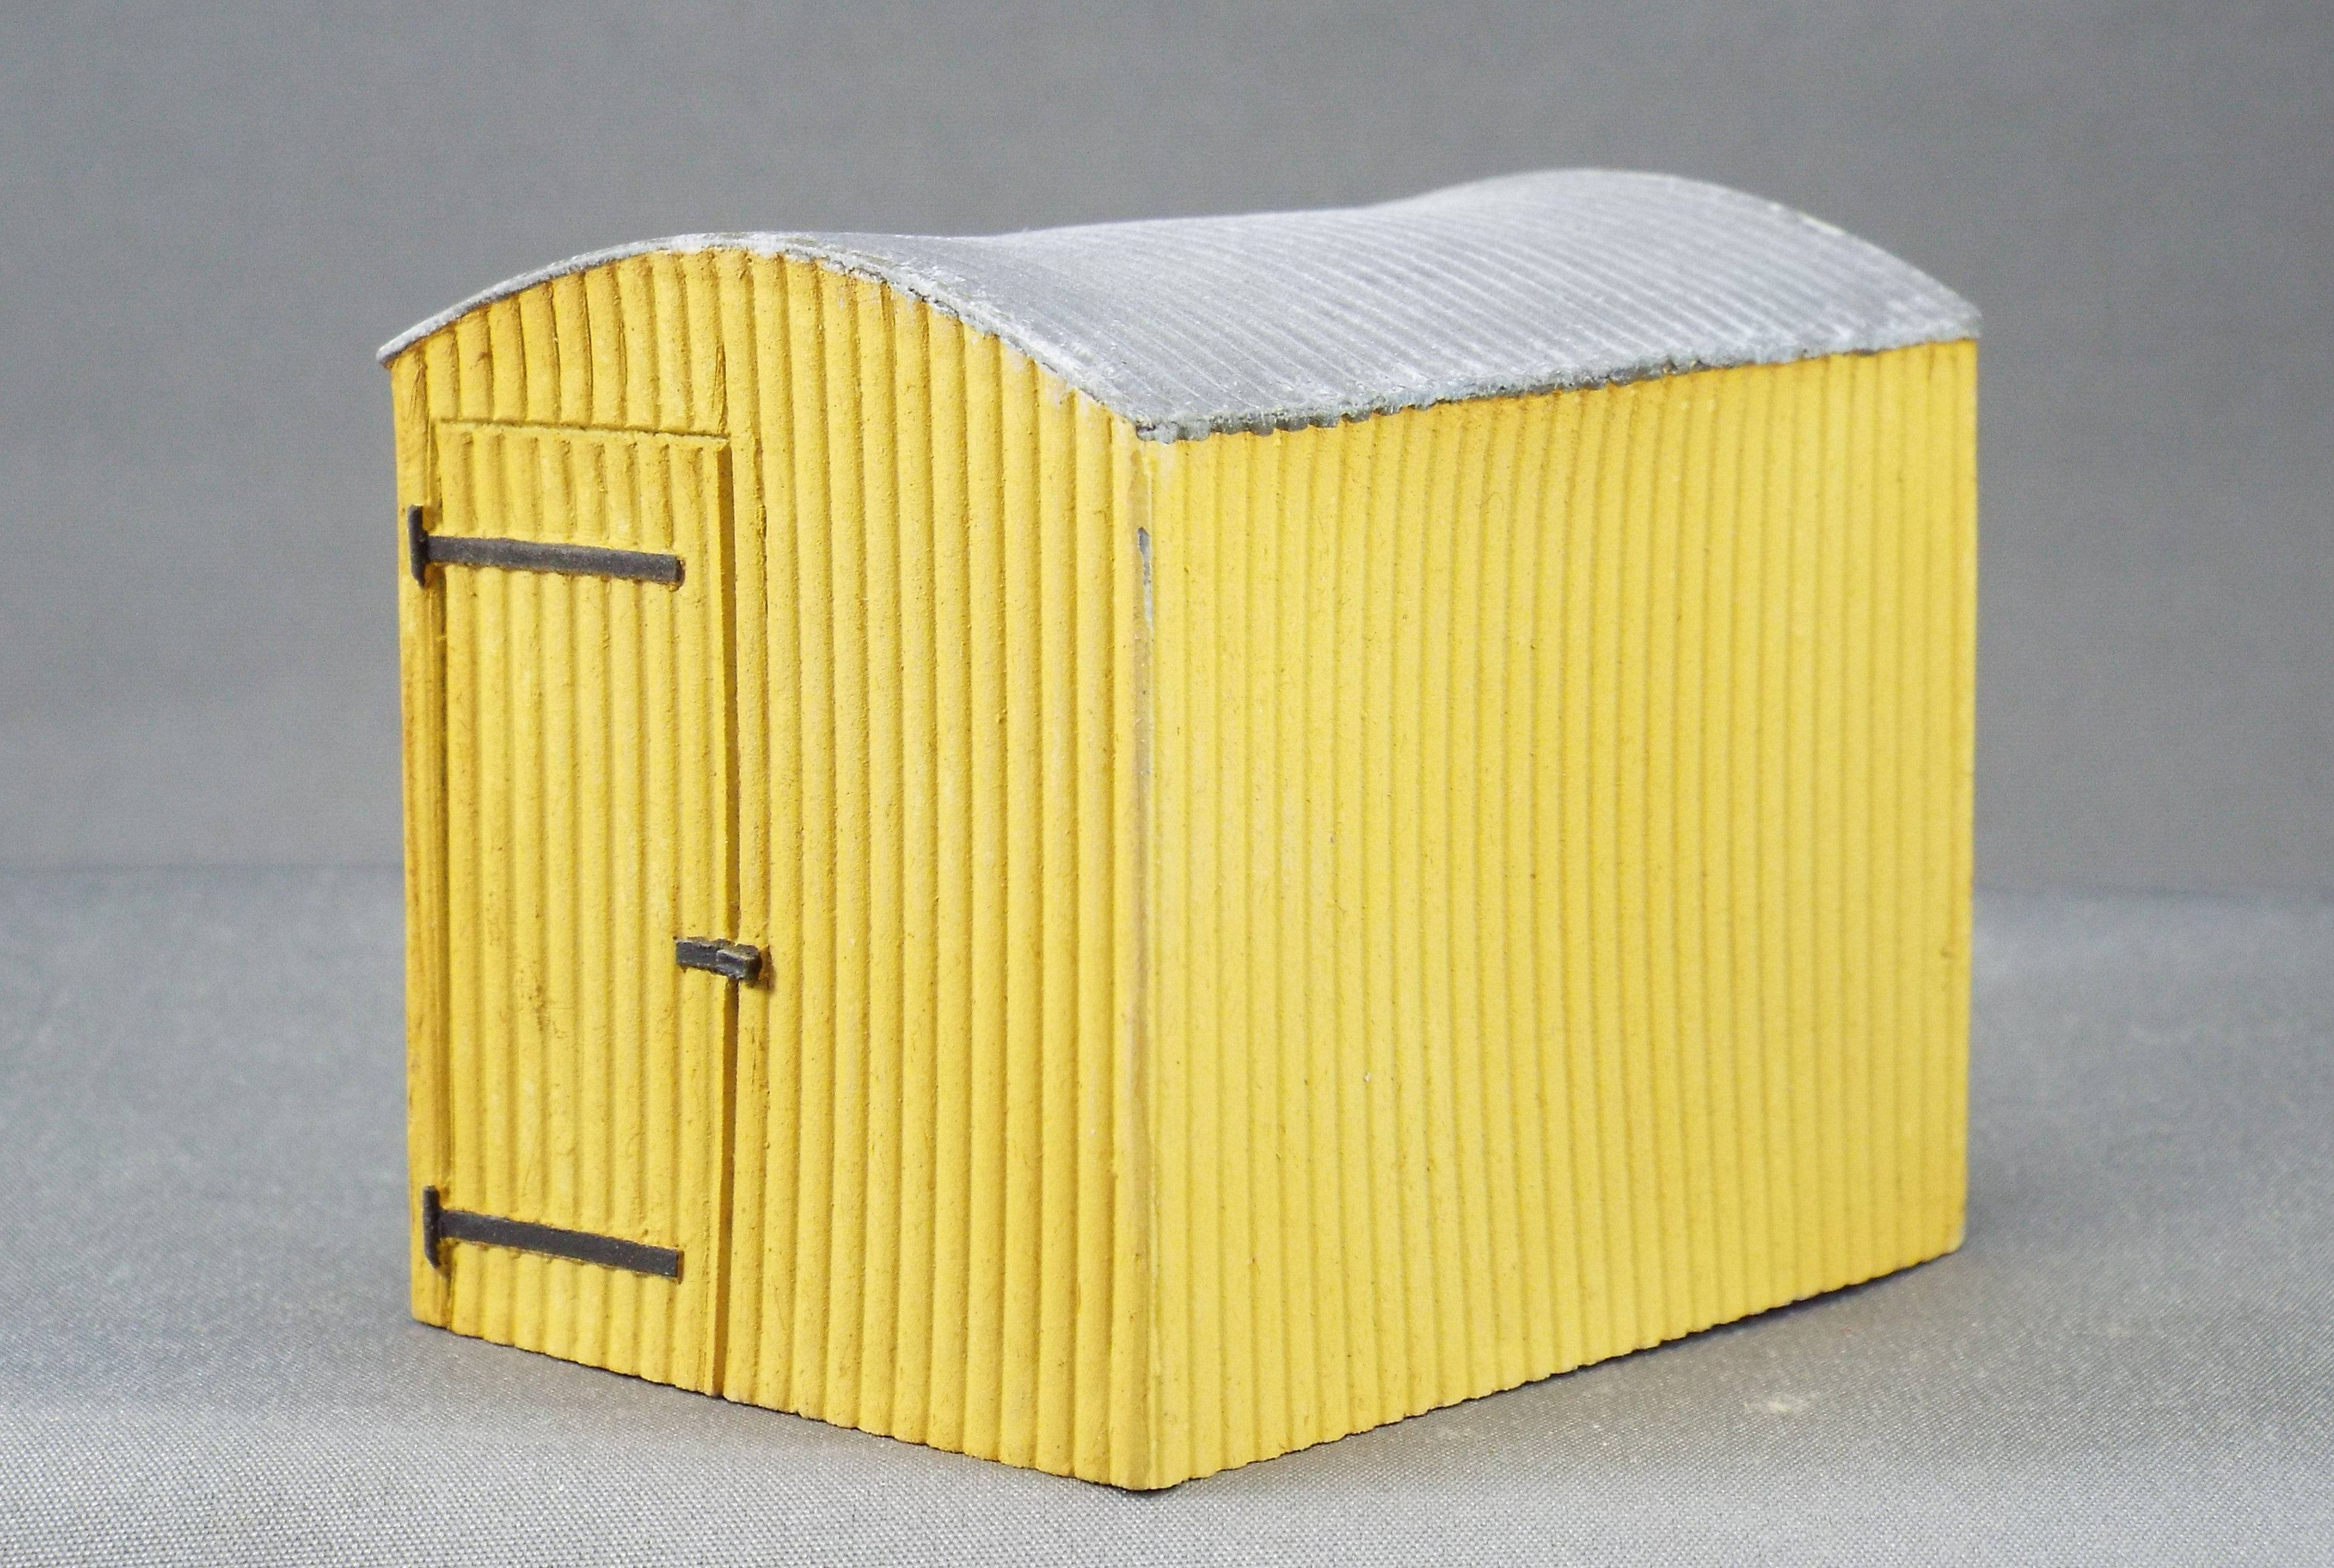 7/027PCG Corrugated Lamp Hut *Painted* in Cream & Grey